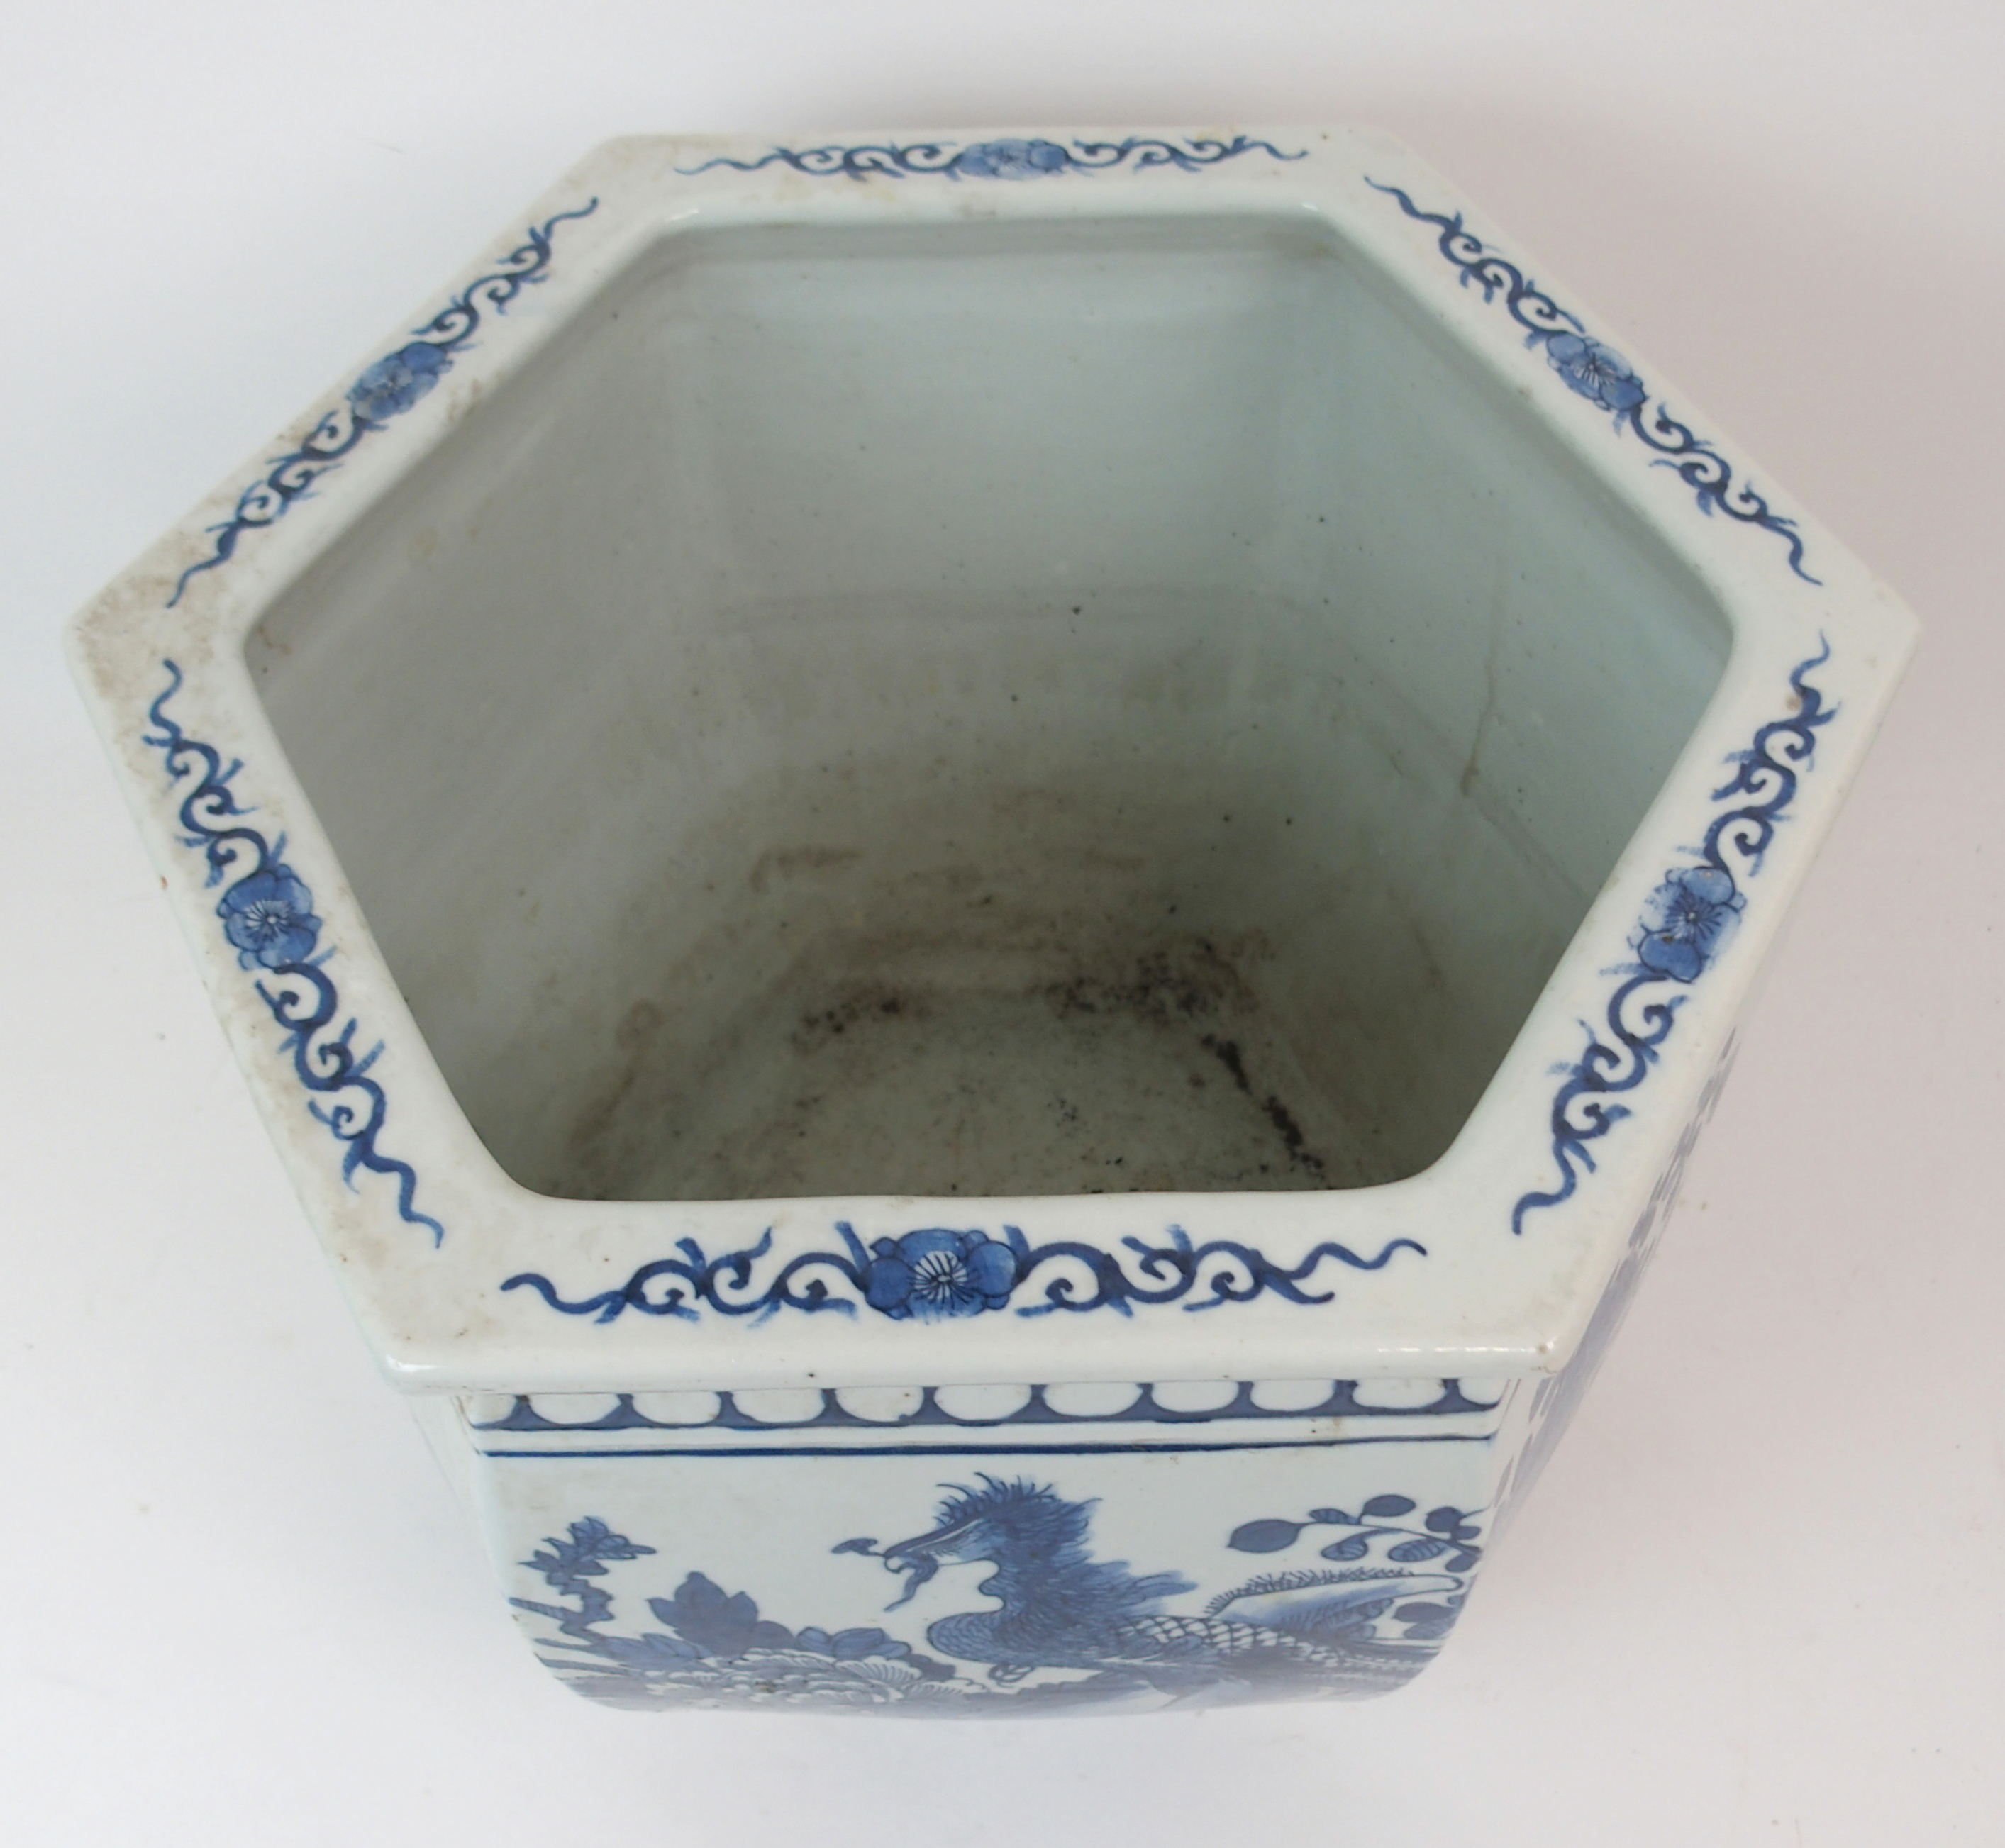 Lot 49 - A CHINESE FAMILLE NOIRE / VERTE FISH BOWL 36cm high and a Chinese blue and white hexagonal